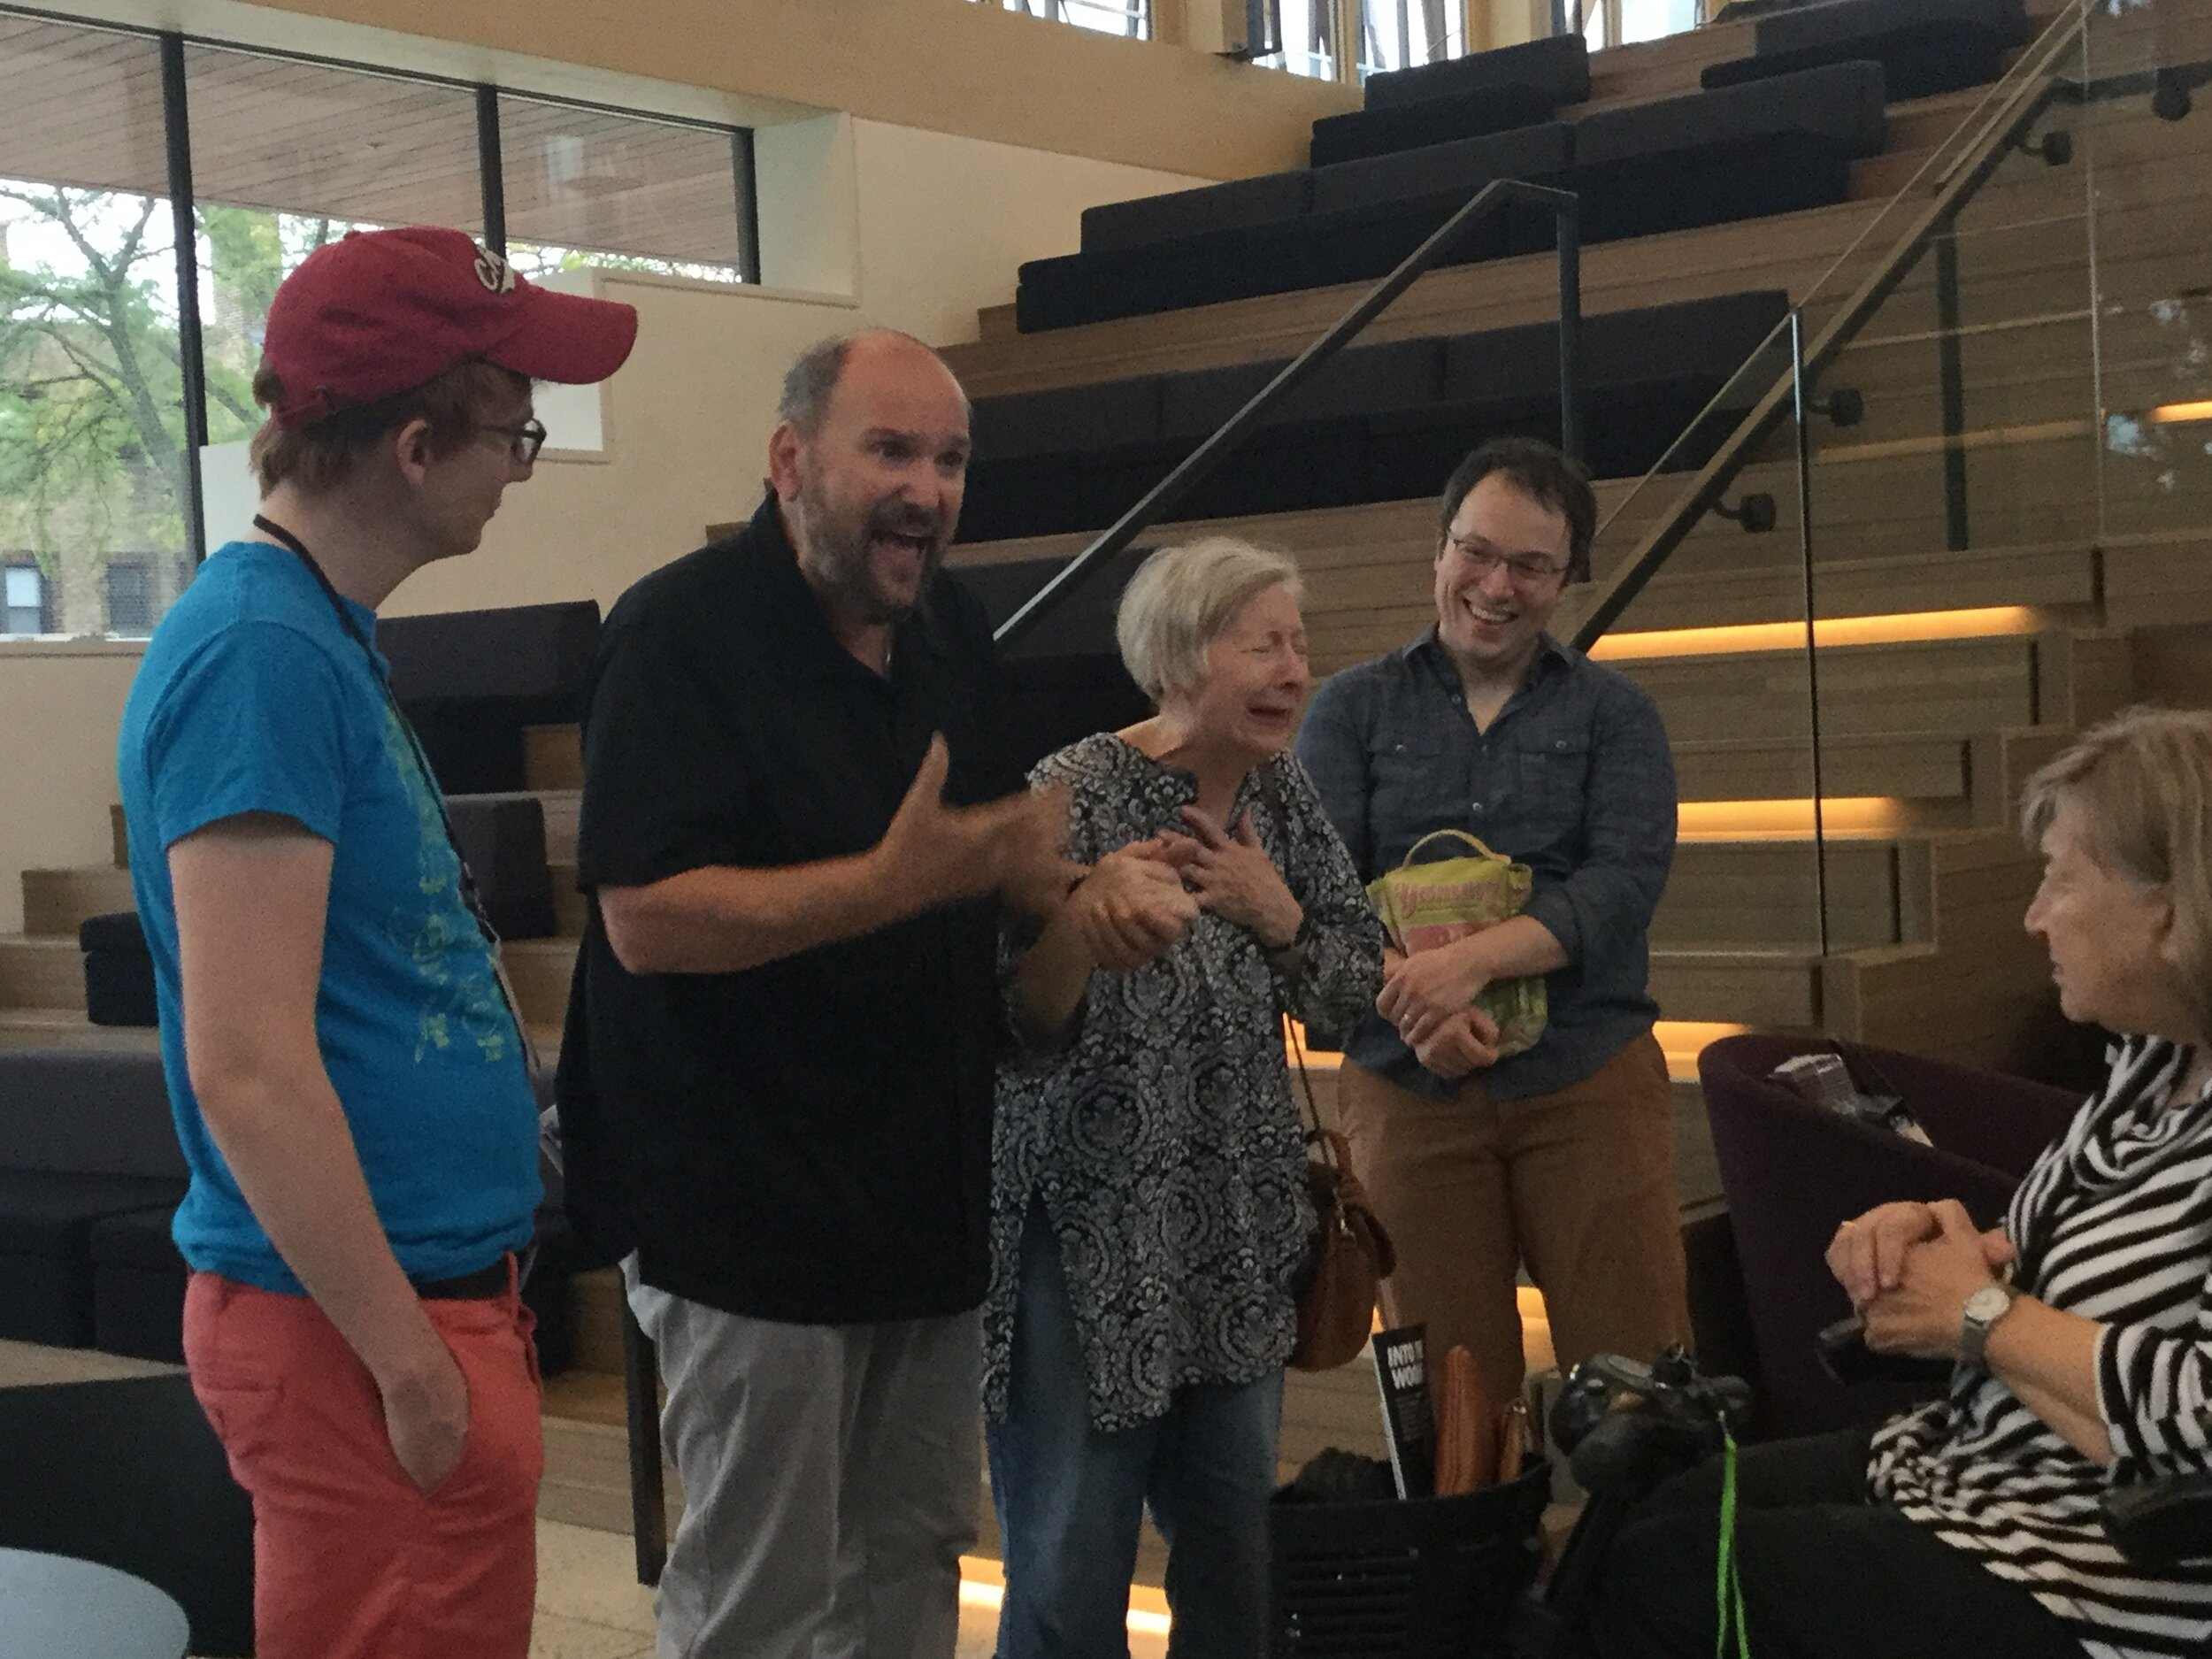 Dominic Missimi leading a talkback with cast members from the incredible Writers Theatre production of  Into The Woods . Left to right Ben Barker (Jack), Dominic Missimi, Mary Poole (Milky White) and Michael Mahler (Baker).